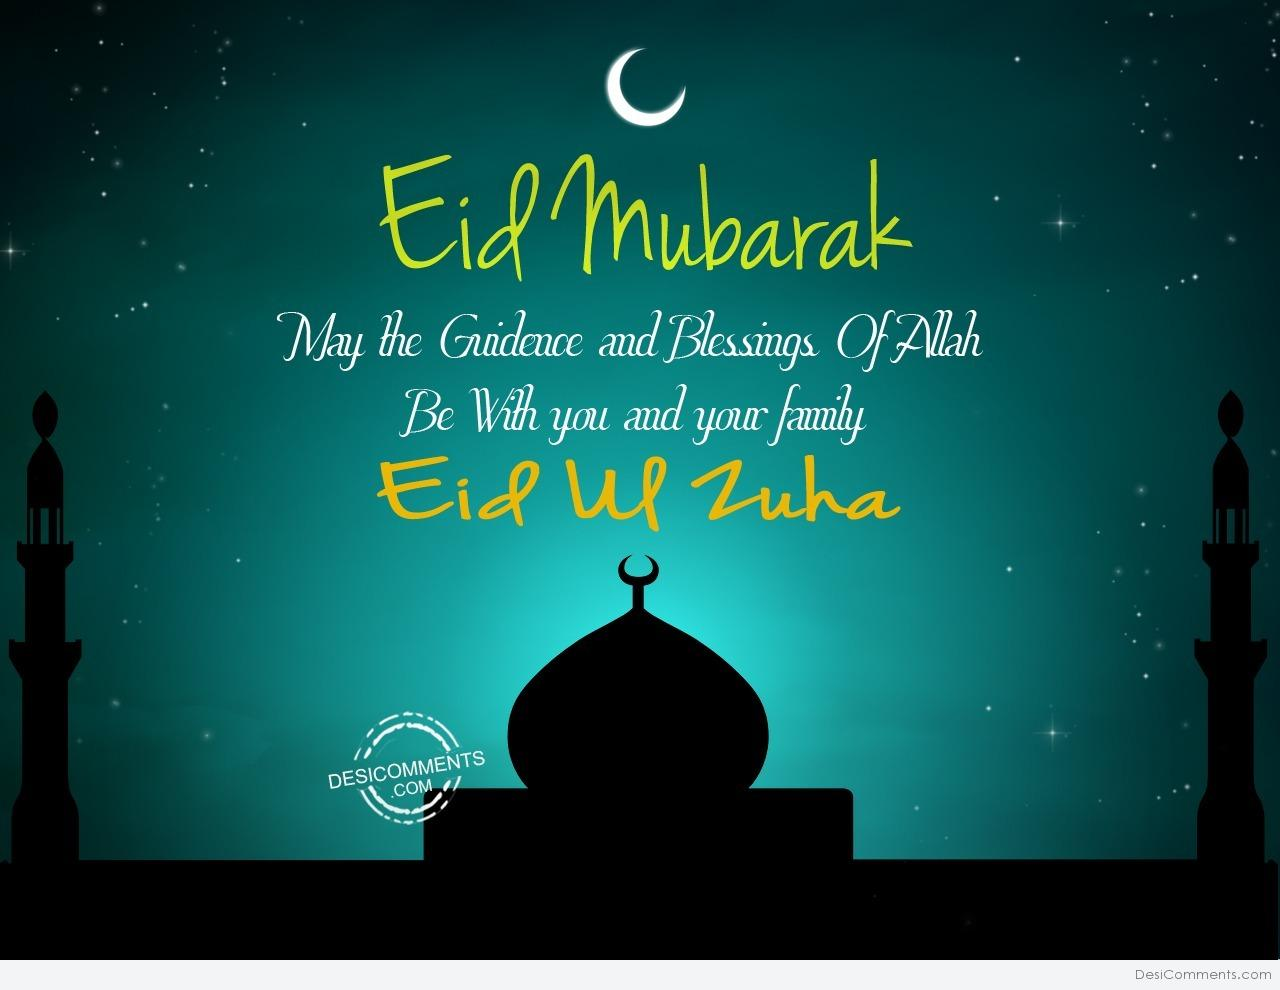 Eid mubarak wishes images latest collection eid mubarak 2017 eid mubarak wishes images 2017 kristyandbryce Gallery